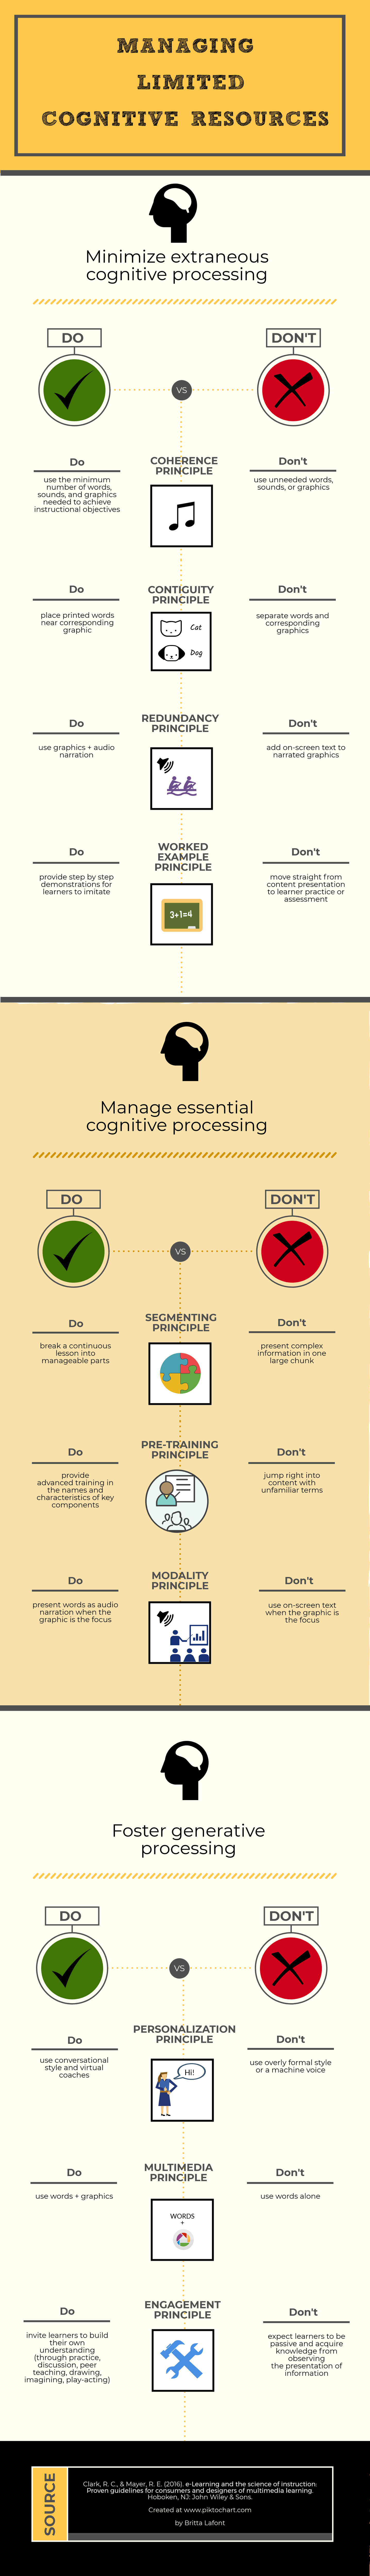 infographic for managing cognitive load